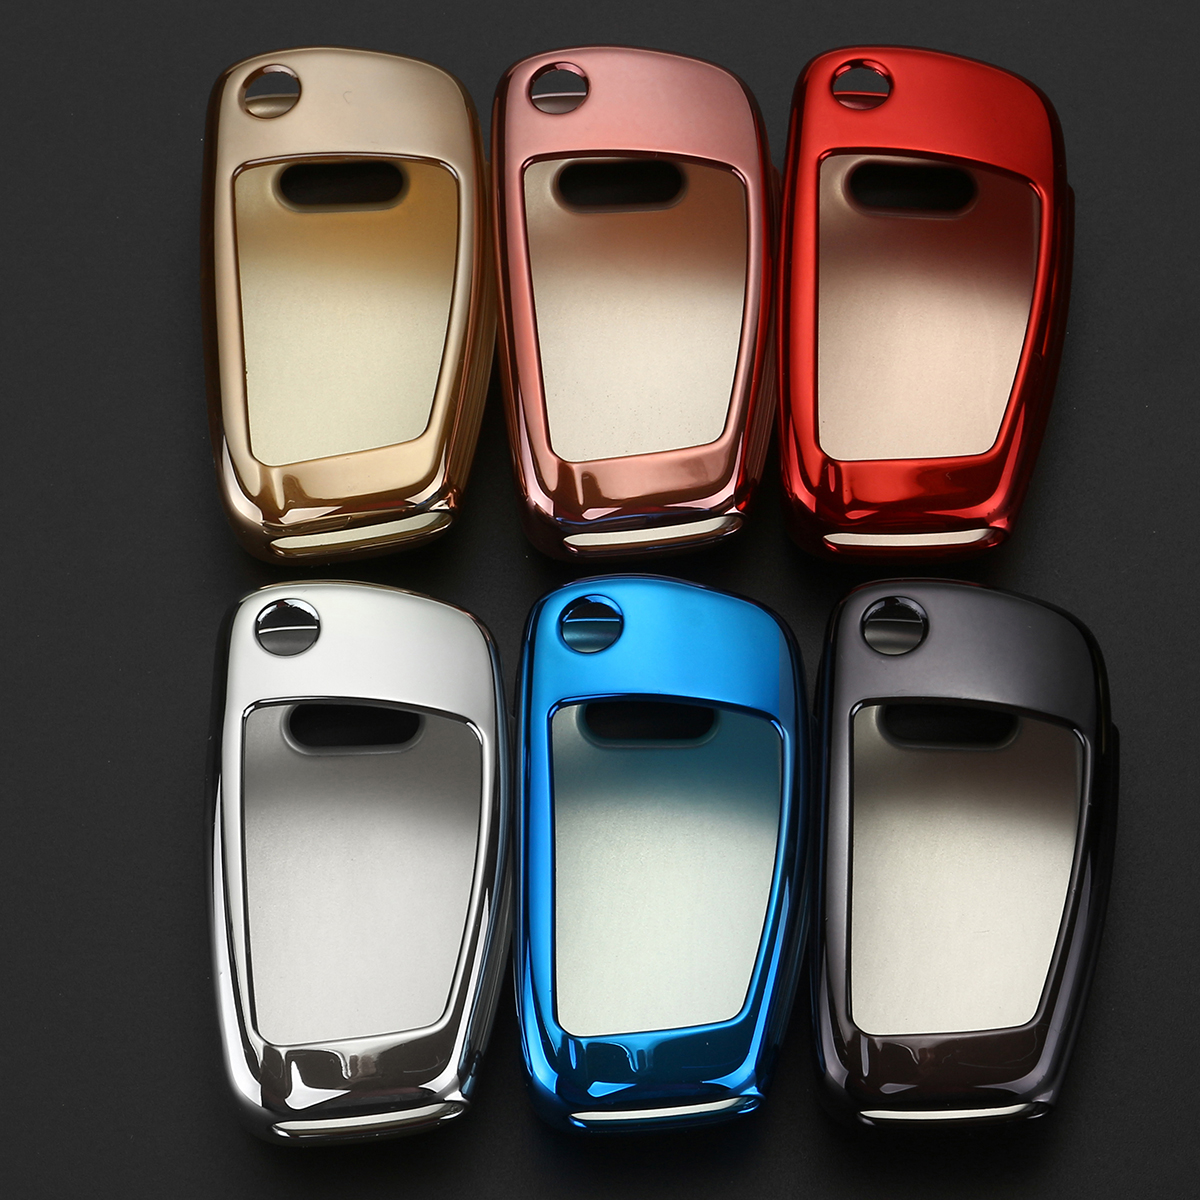 TPU Car Styling Soft TPU Auto Key Protection Cover Case For Audi C6 A7 A8 R8 A1 A3 A4 A5 Q7 A6 C5 Car Holder Shell Car-Styling baseus guards case tpu tpe cover for iphone 7 red